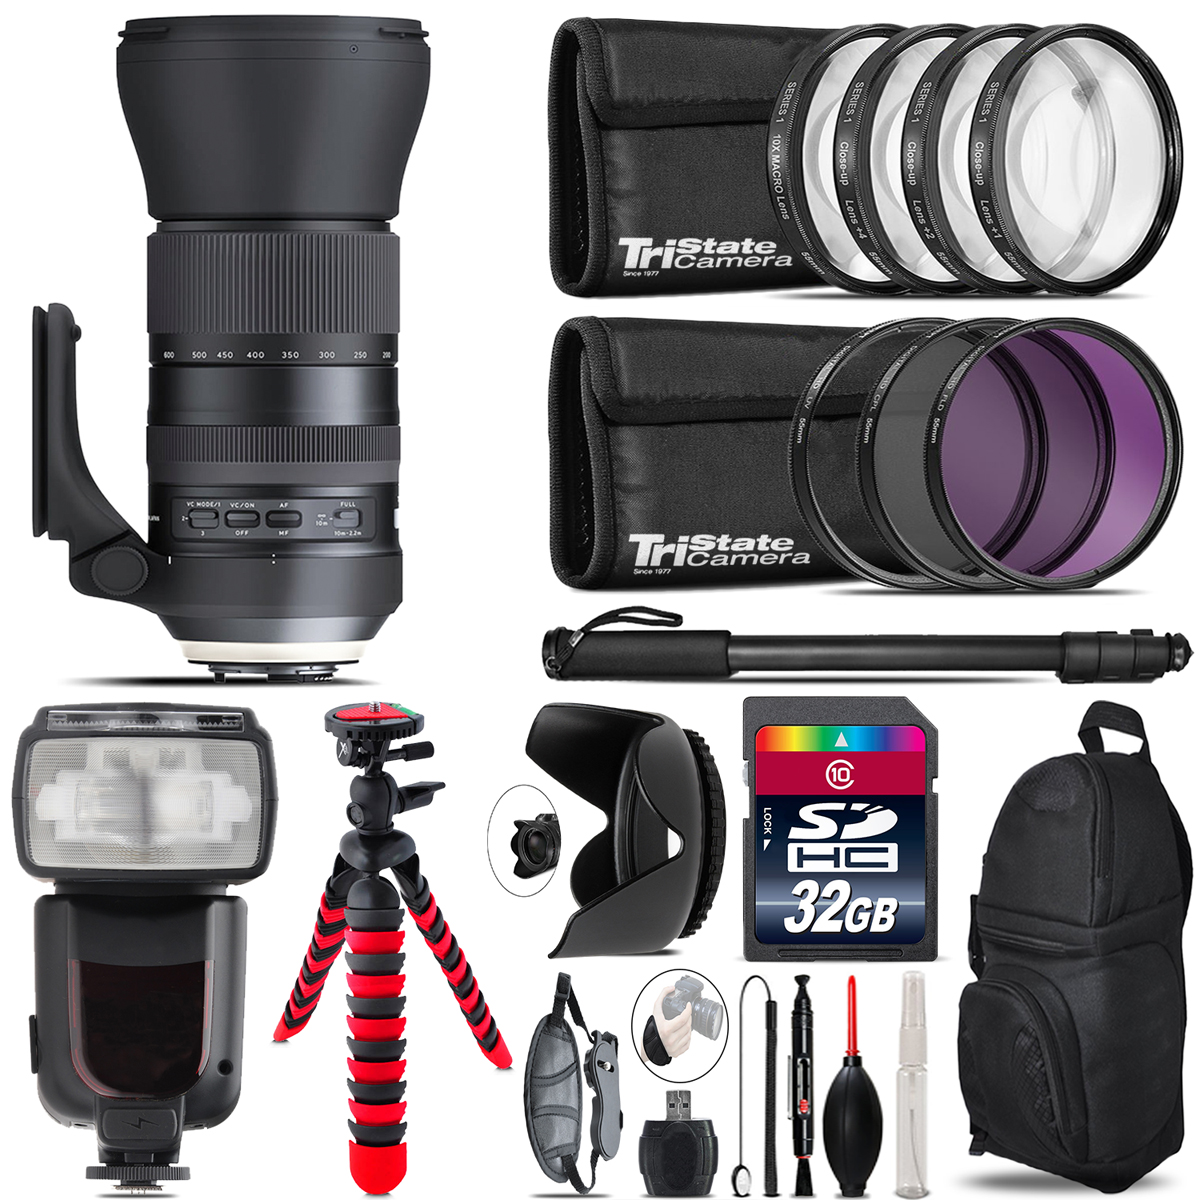 Tamron 150-600mm G2 for Nikon + Professional Flash & More - 32GB Accessory Kit *FREE SHIPPING*